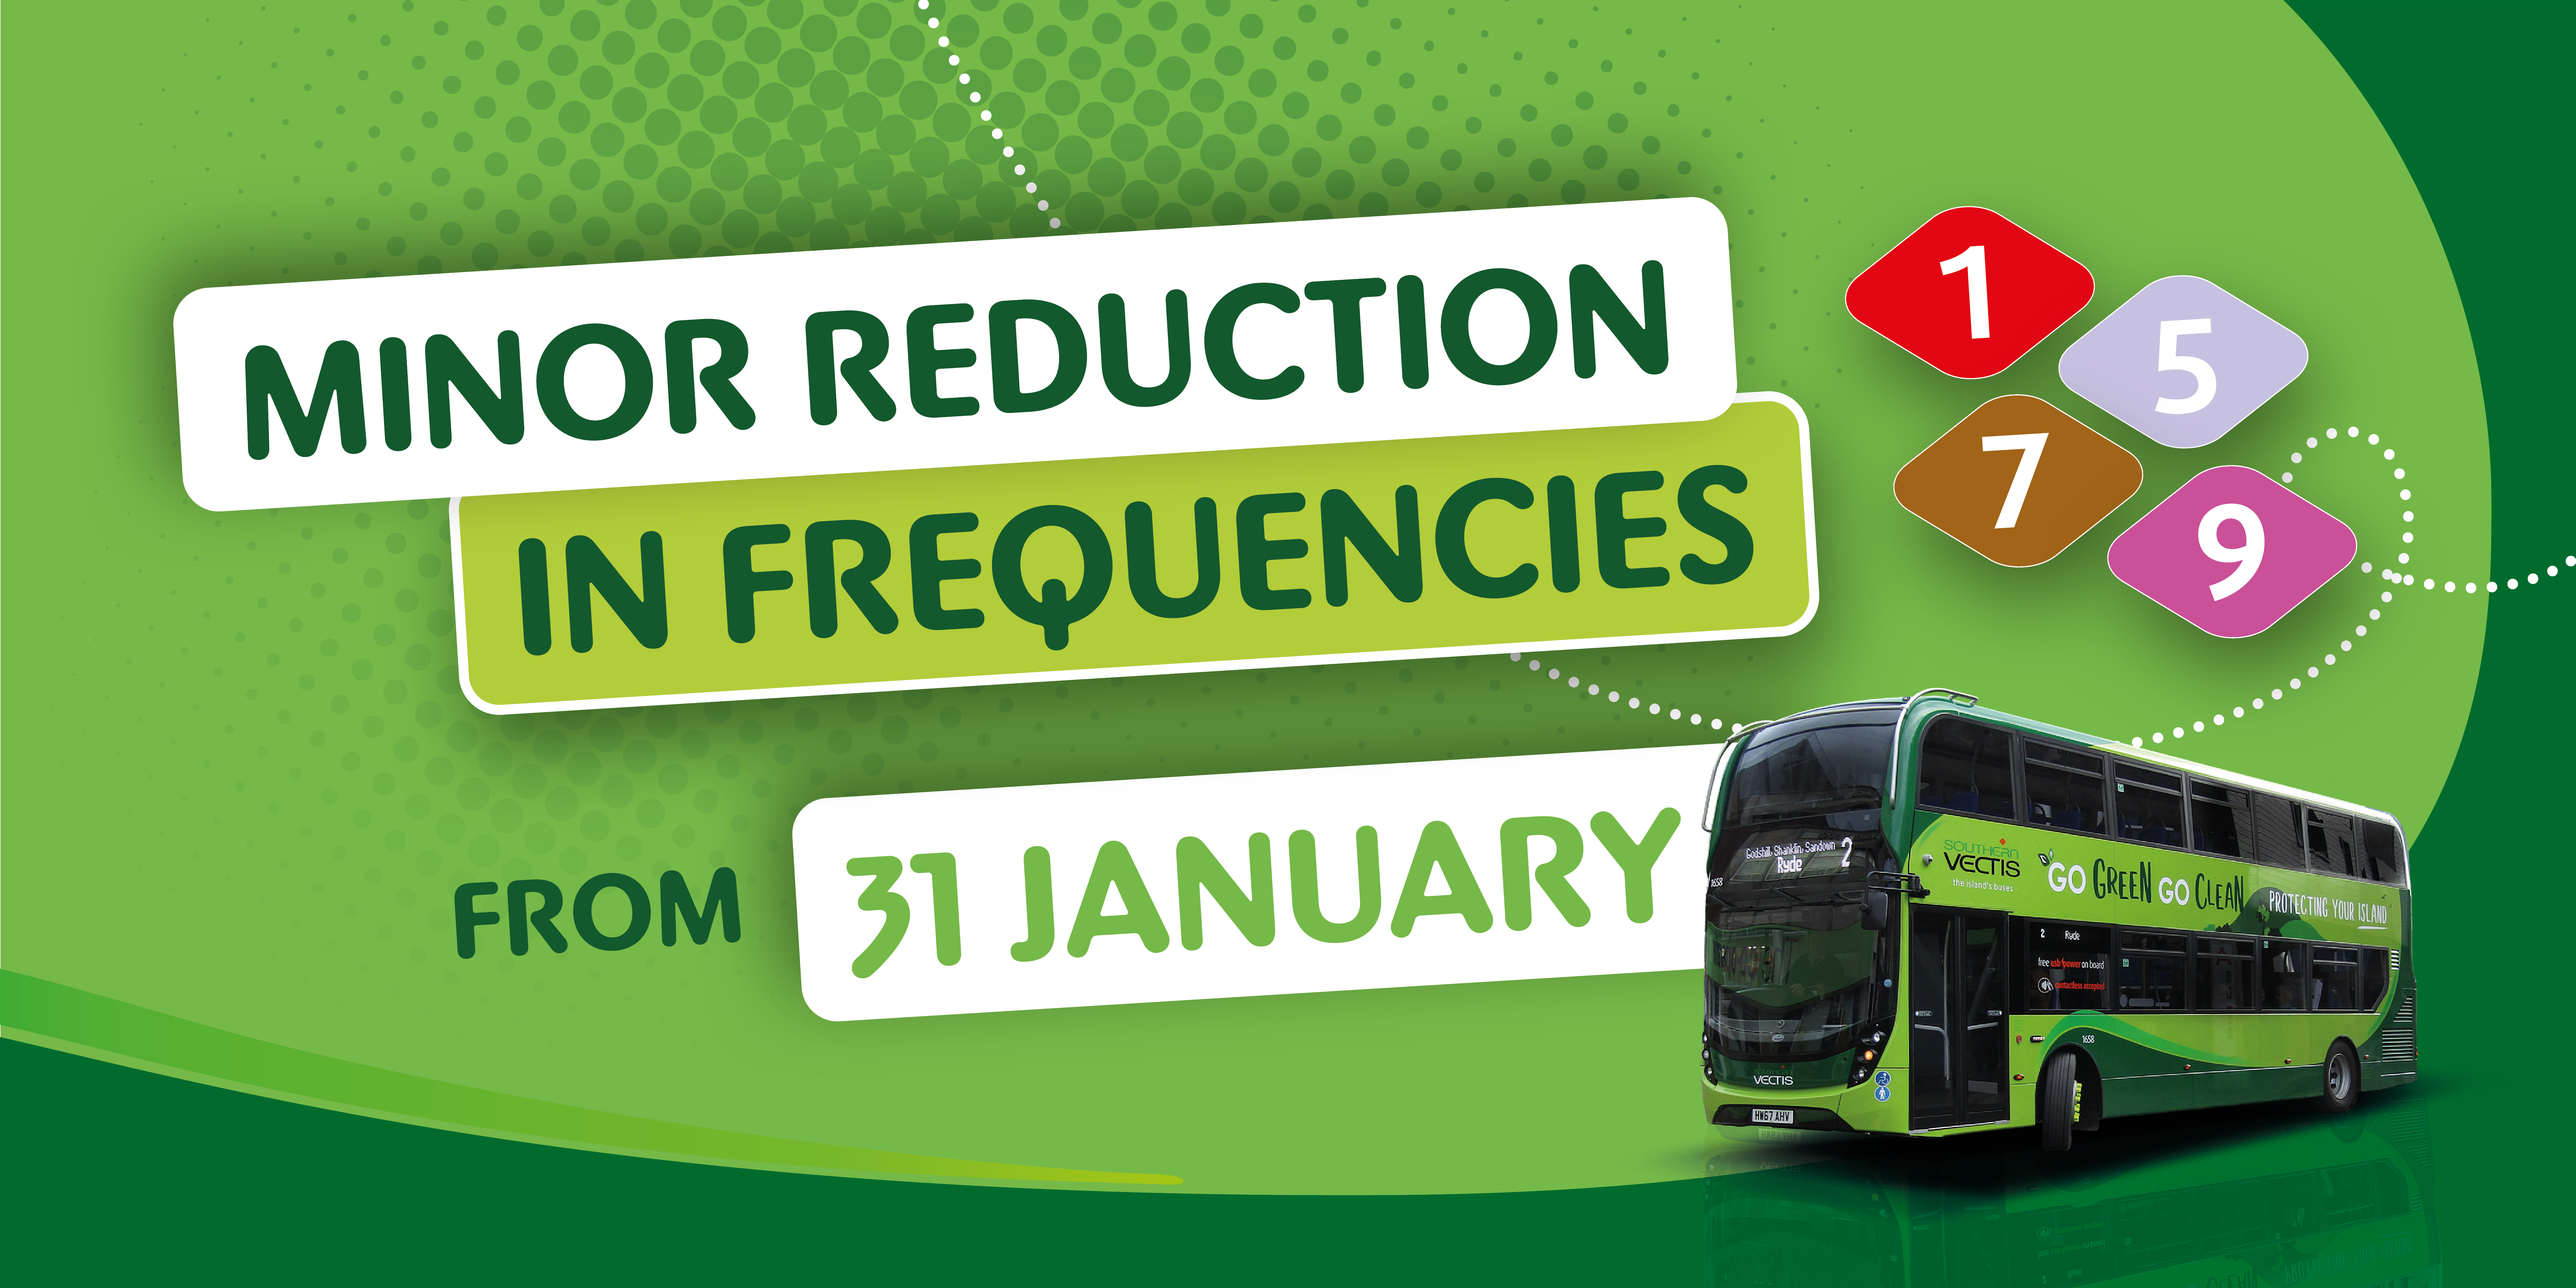 Minor Reduction in frequencies from 31st January and image of bus